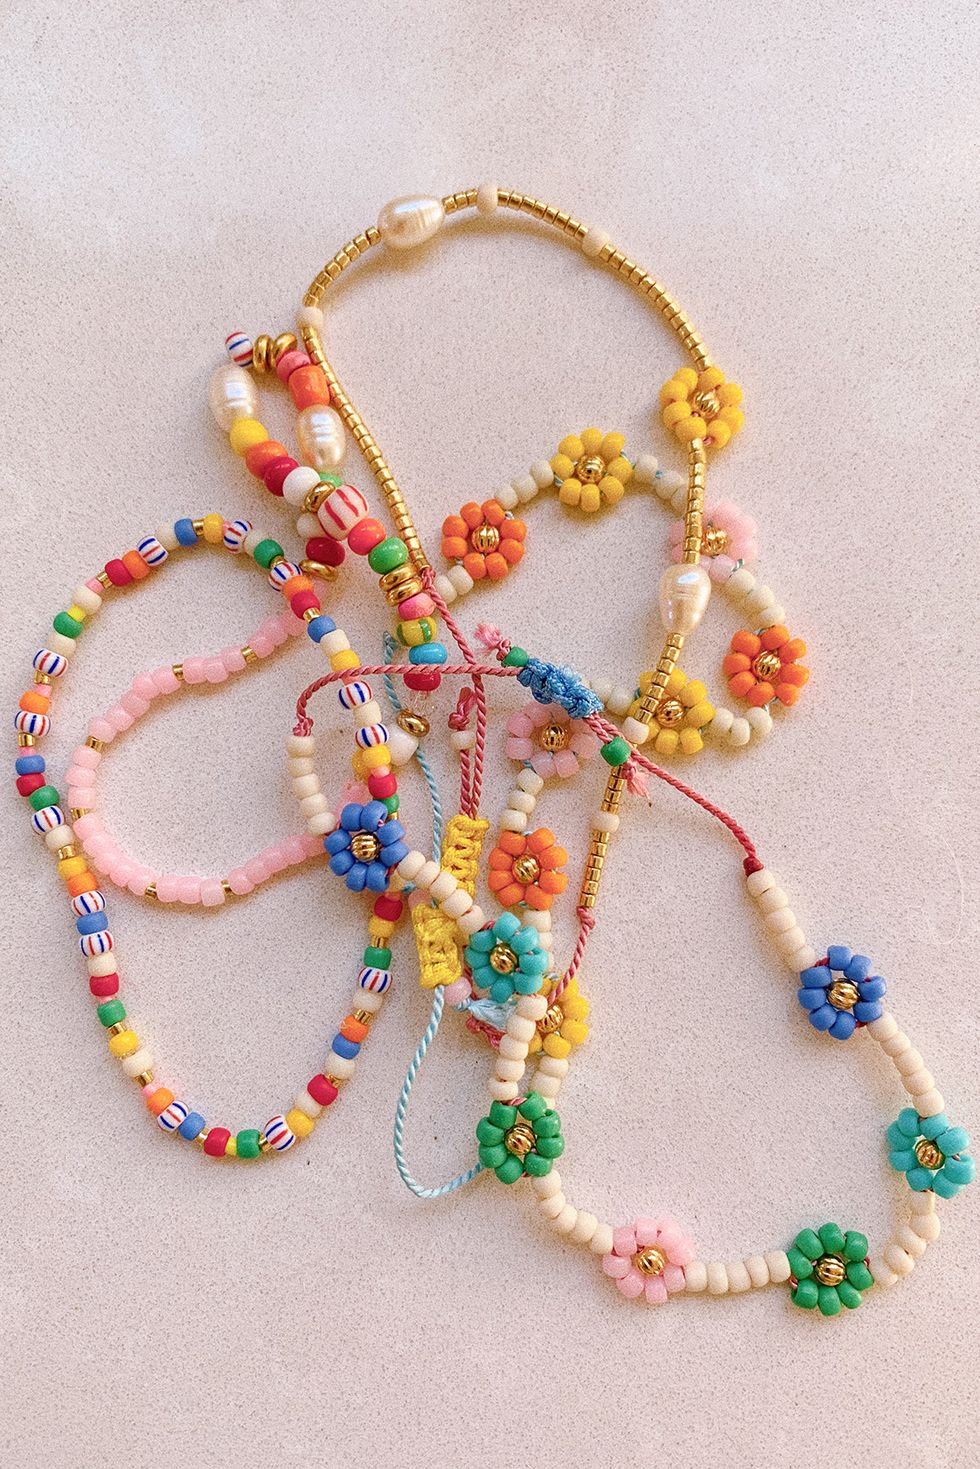 DIY Beaded Daisy Chain Bracelet - Honestly WTF